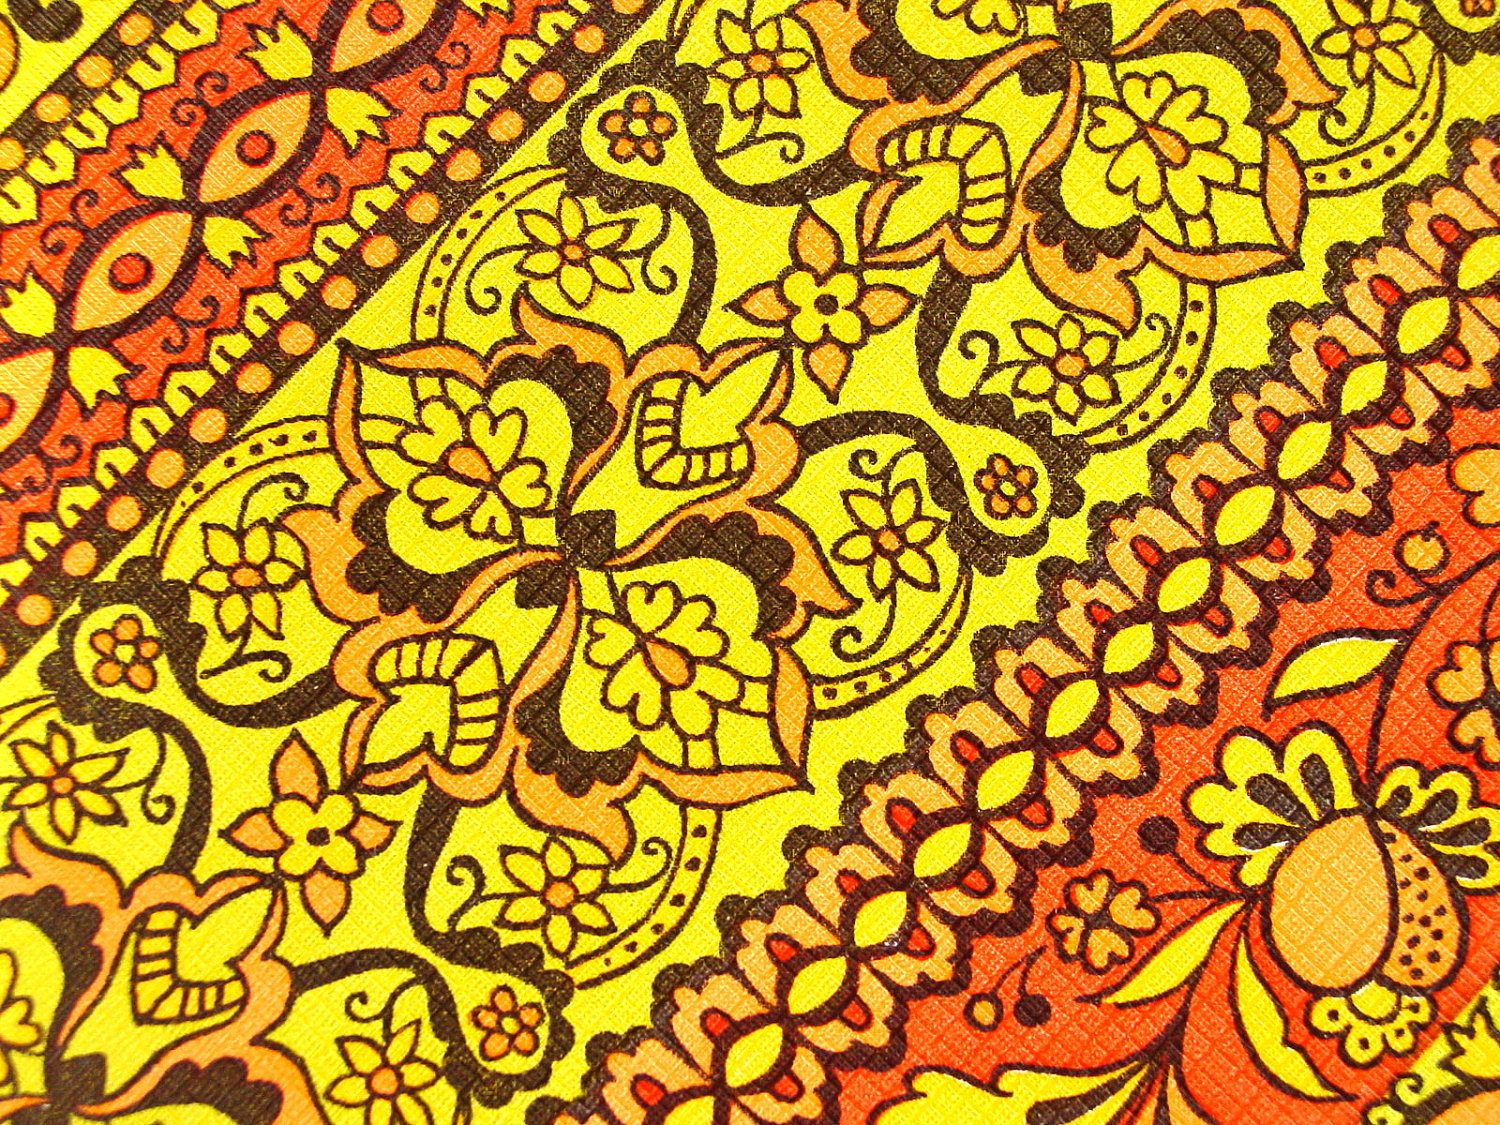 1970s Wallpaper Patterns 1970s harvest gold wallpaper 1500x1125